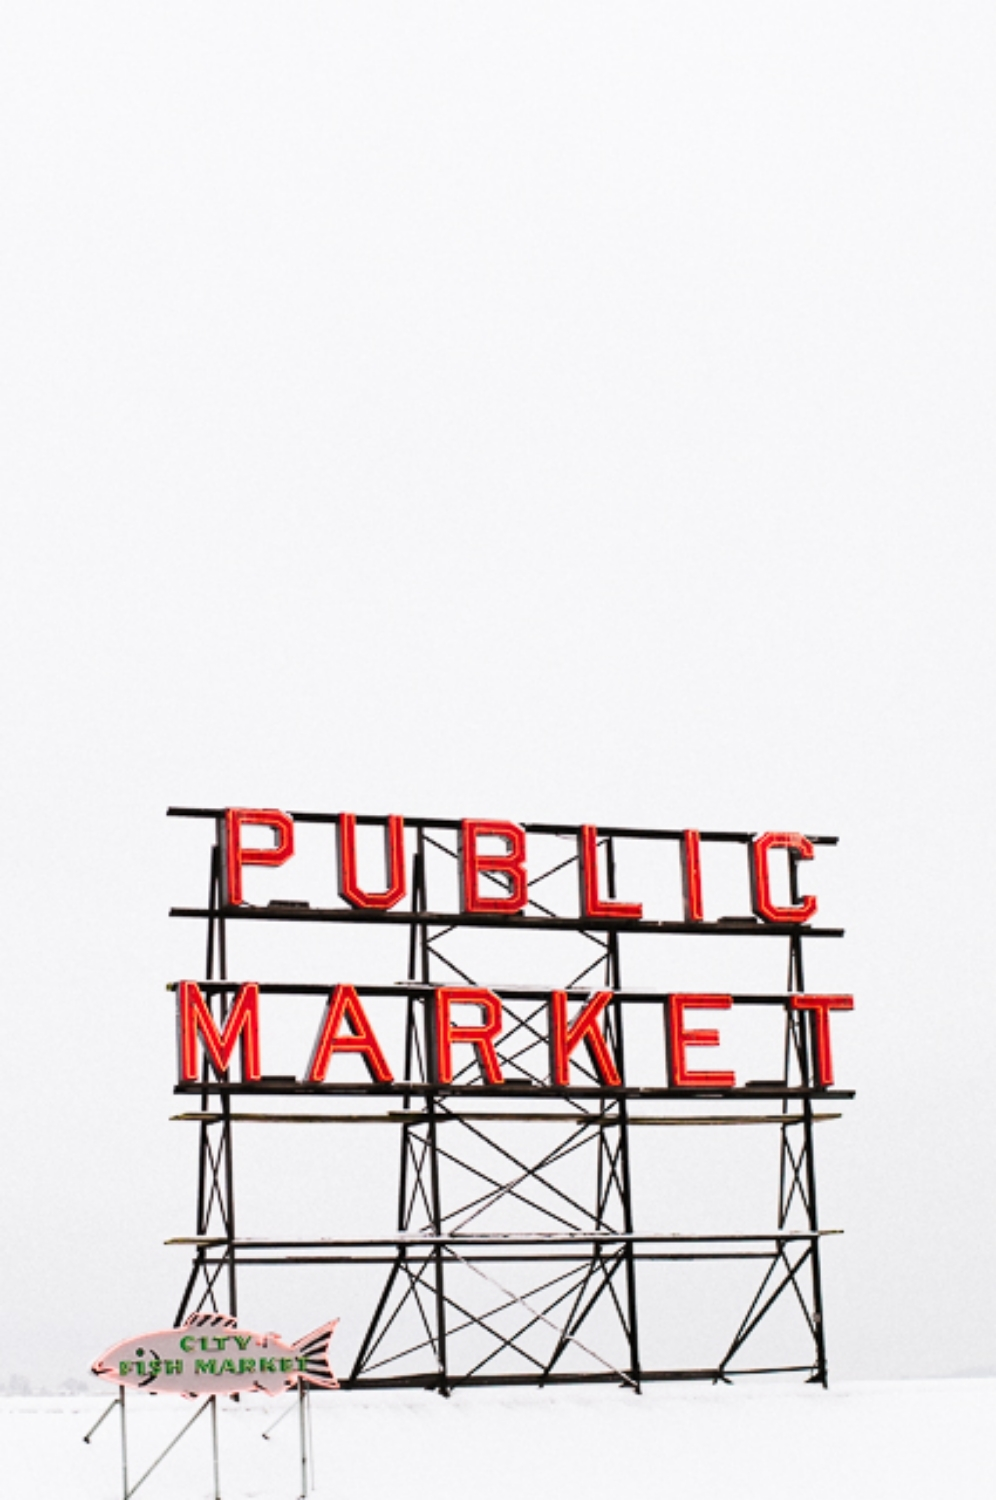 Pike Place Market, Seattle sign